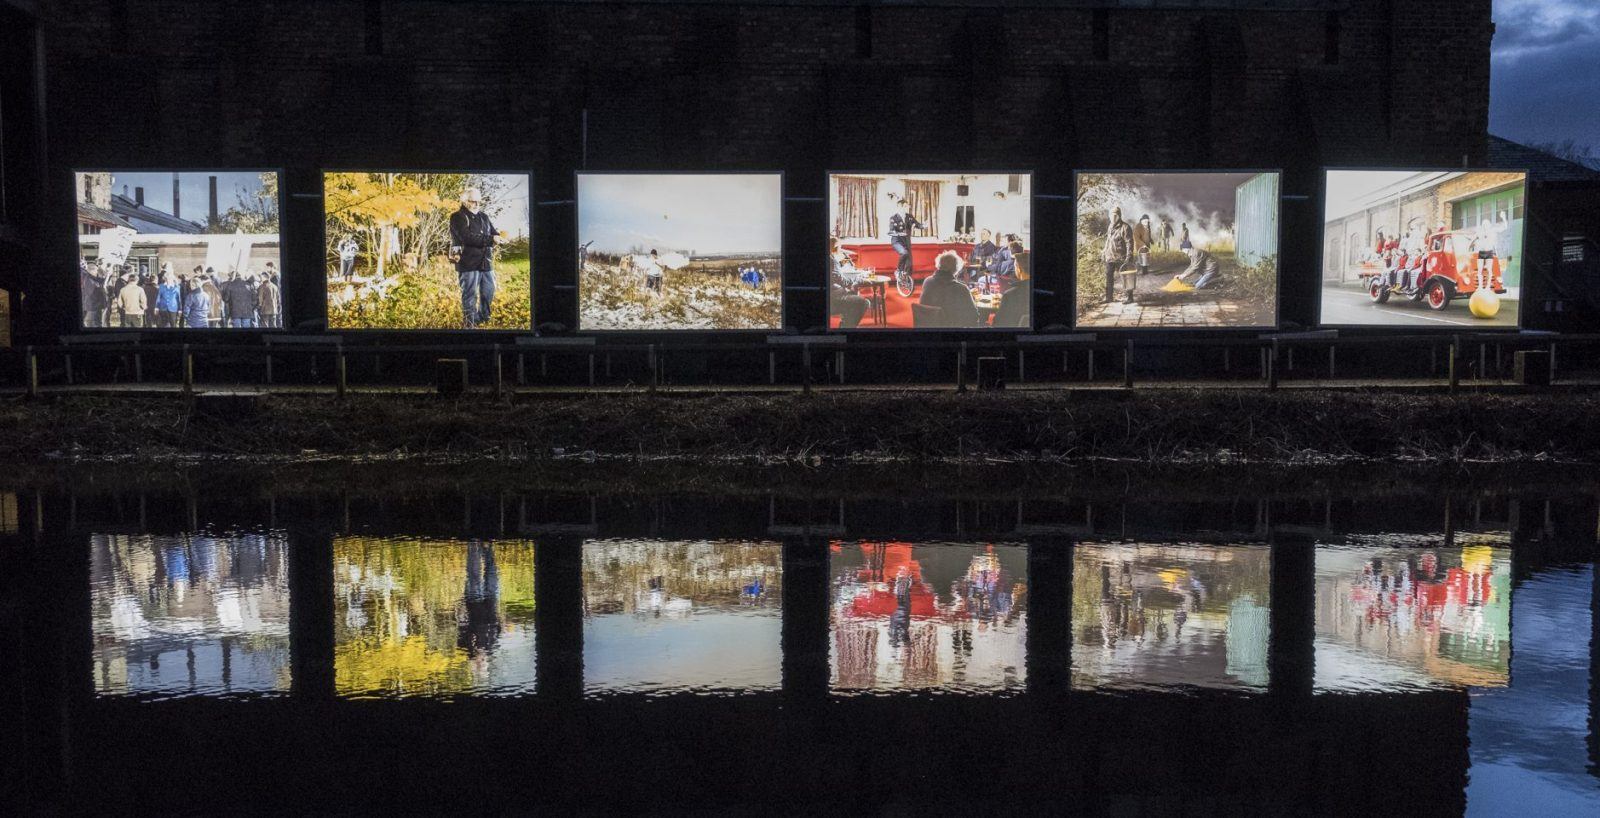 6 large light boxes with a different image in each stand in a row next to a canal. The canal water reflects the images. It's dark outside.